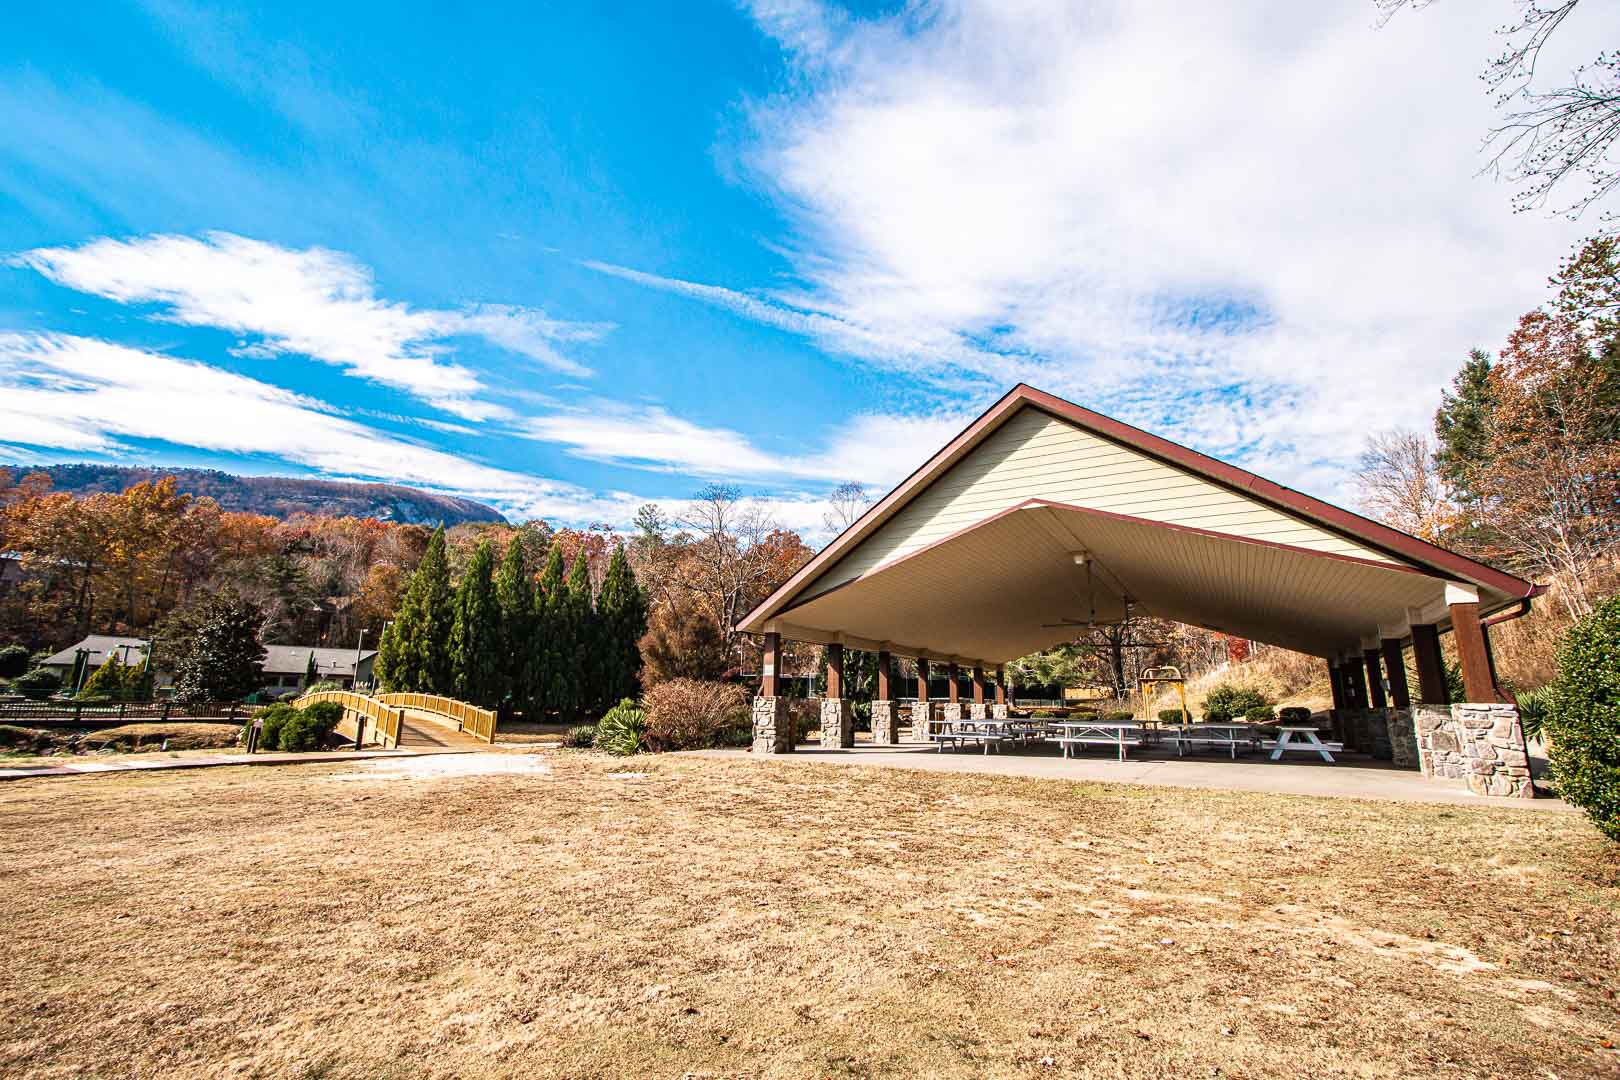 A spacious picnic area at VRI's Fairways of the Mountains in North Carolina